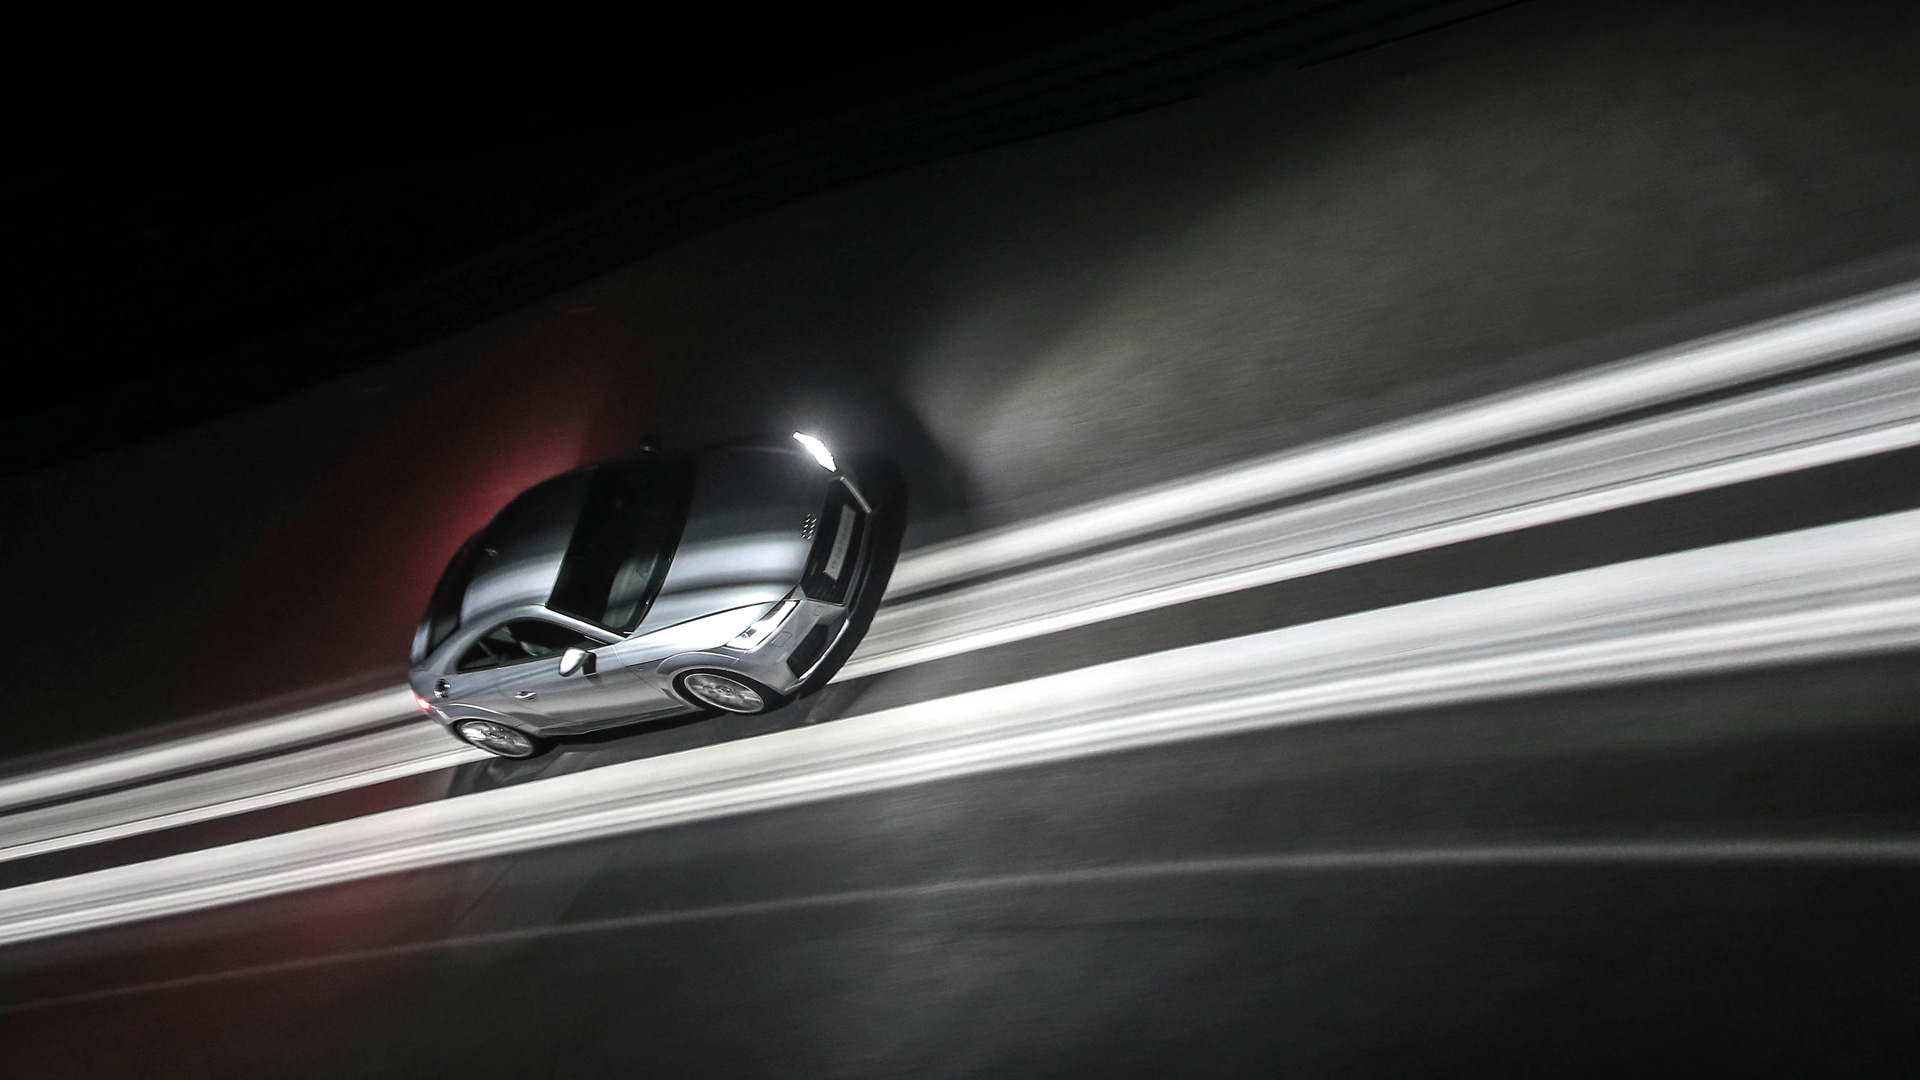 The picture shows an Audi TT racing through the curve from above.